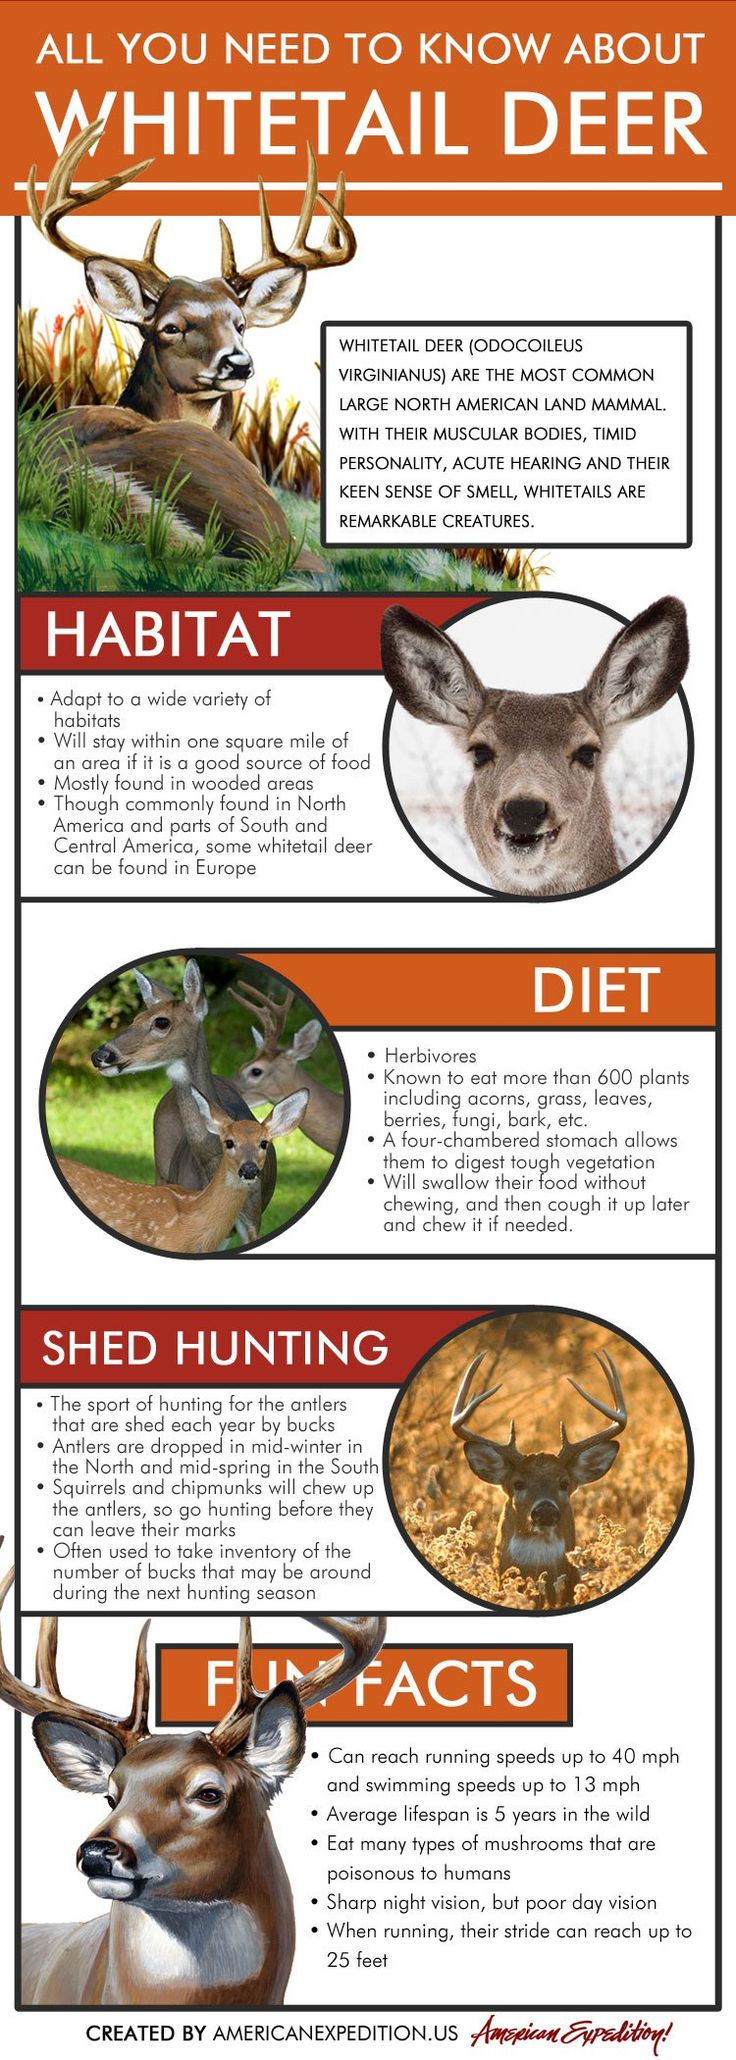 """Whitetail Deer Infographic - """"All You Need to Know About Whitetail Deer"""" - Learn about deer habitats, diets and what antler hunting is."""